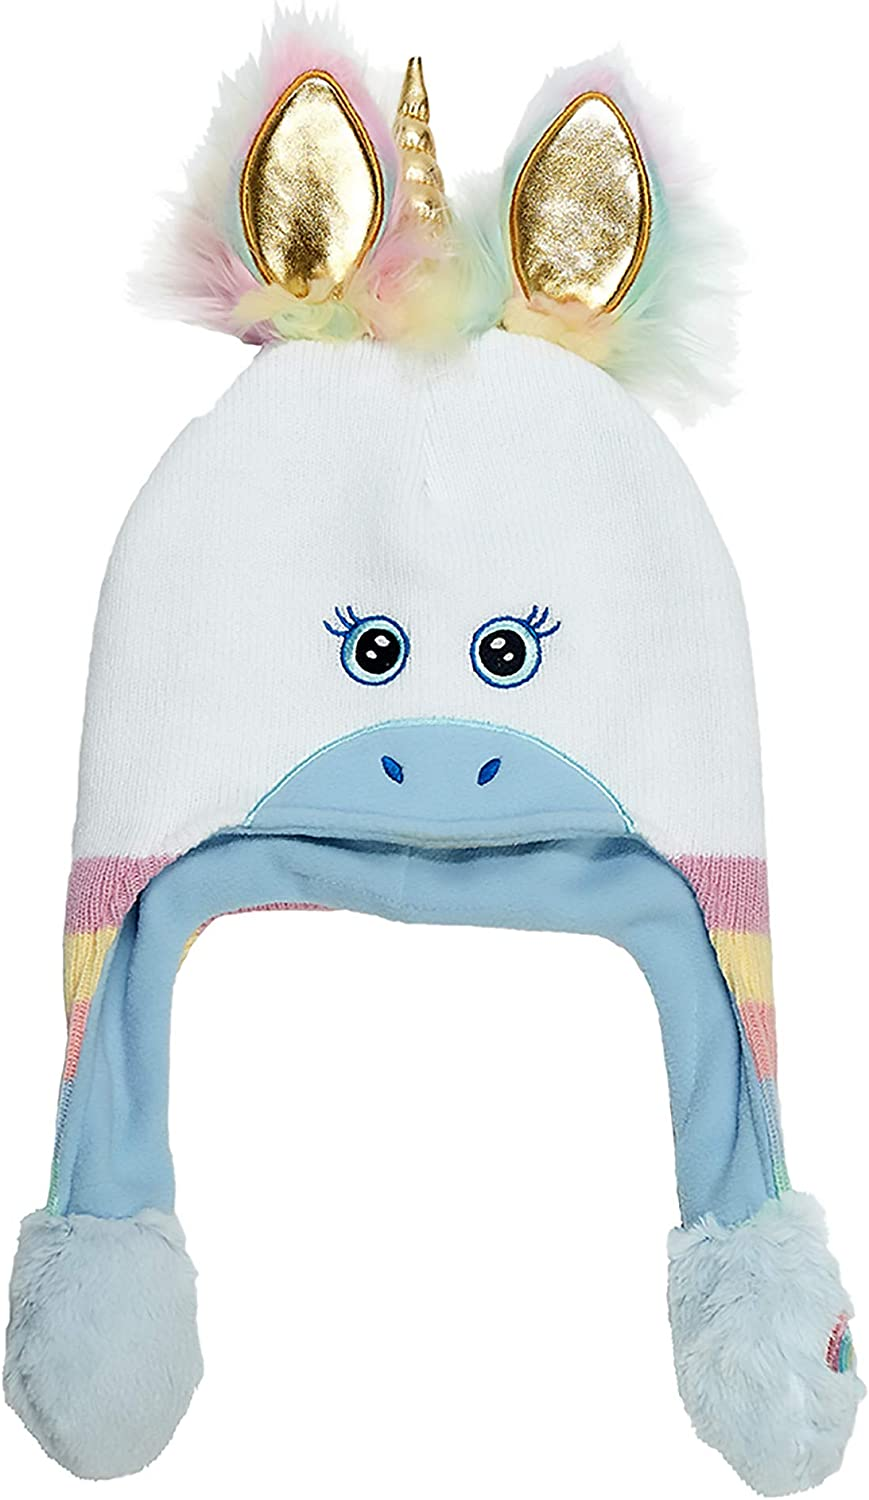 ABG Accessories Girls' Little Unicorn Squeeze and Flap Fun Cold Weather Hat, white/blue, Age 4-7